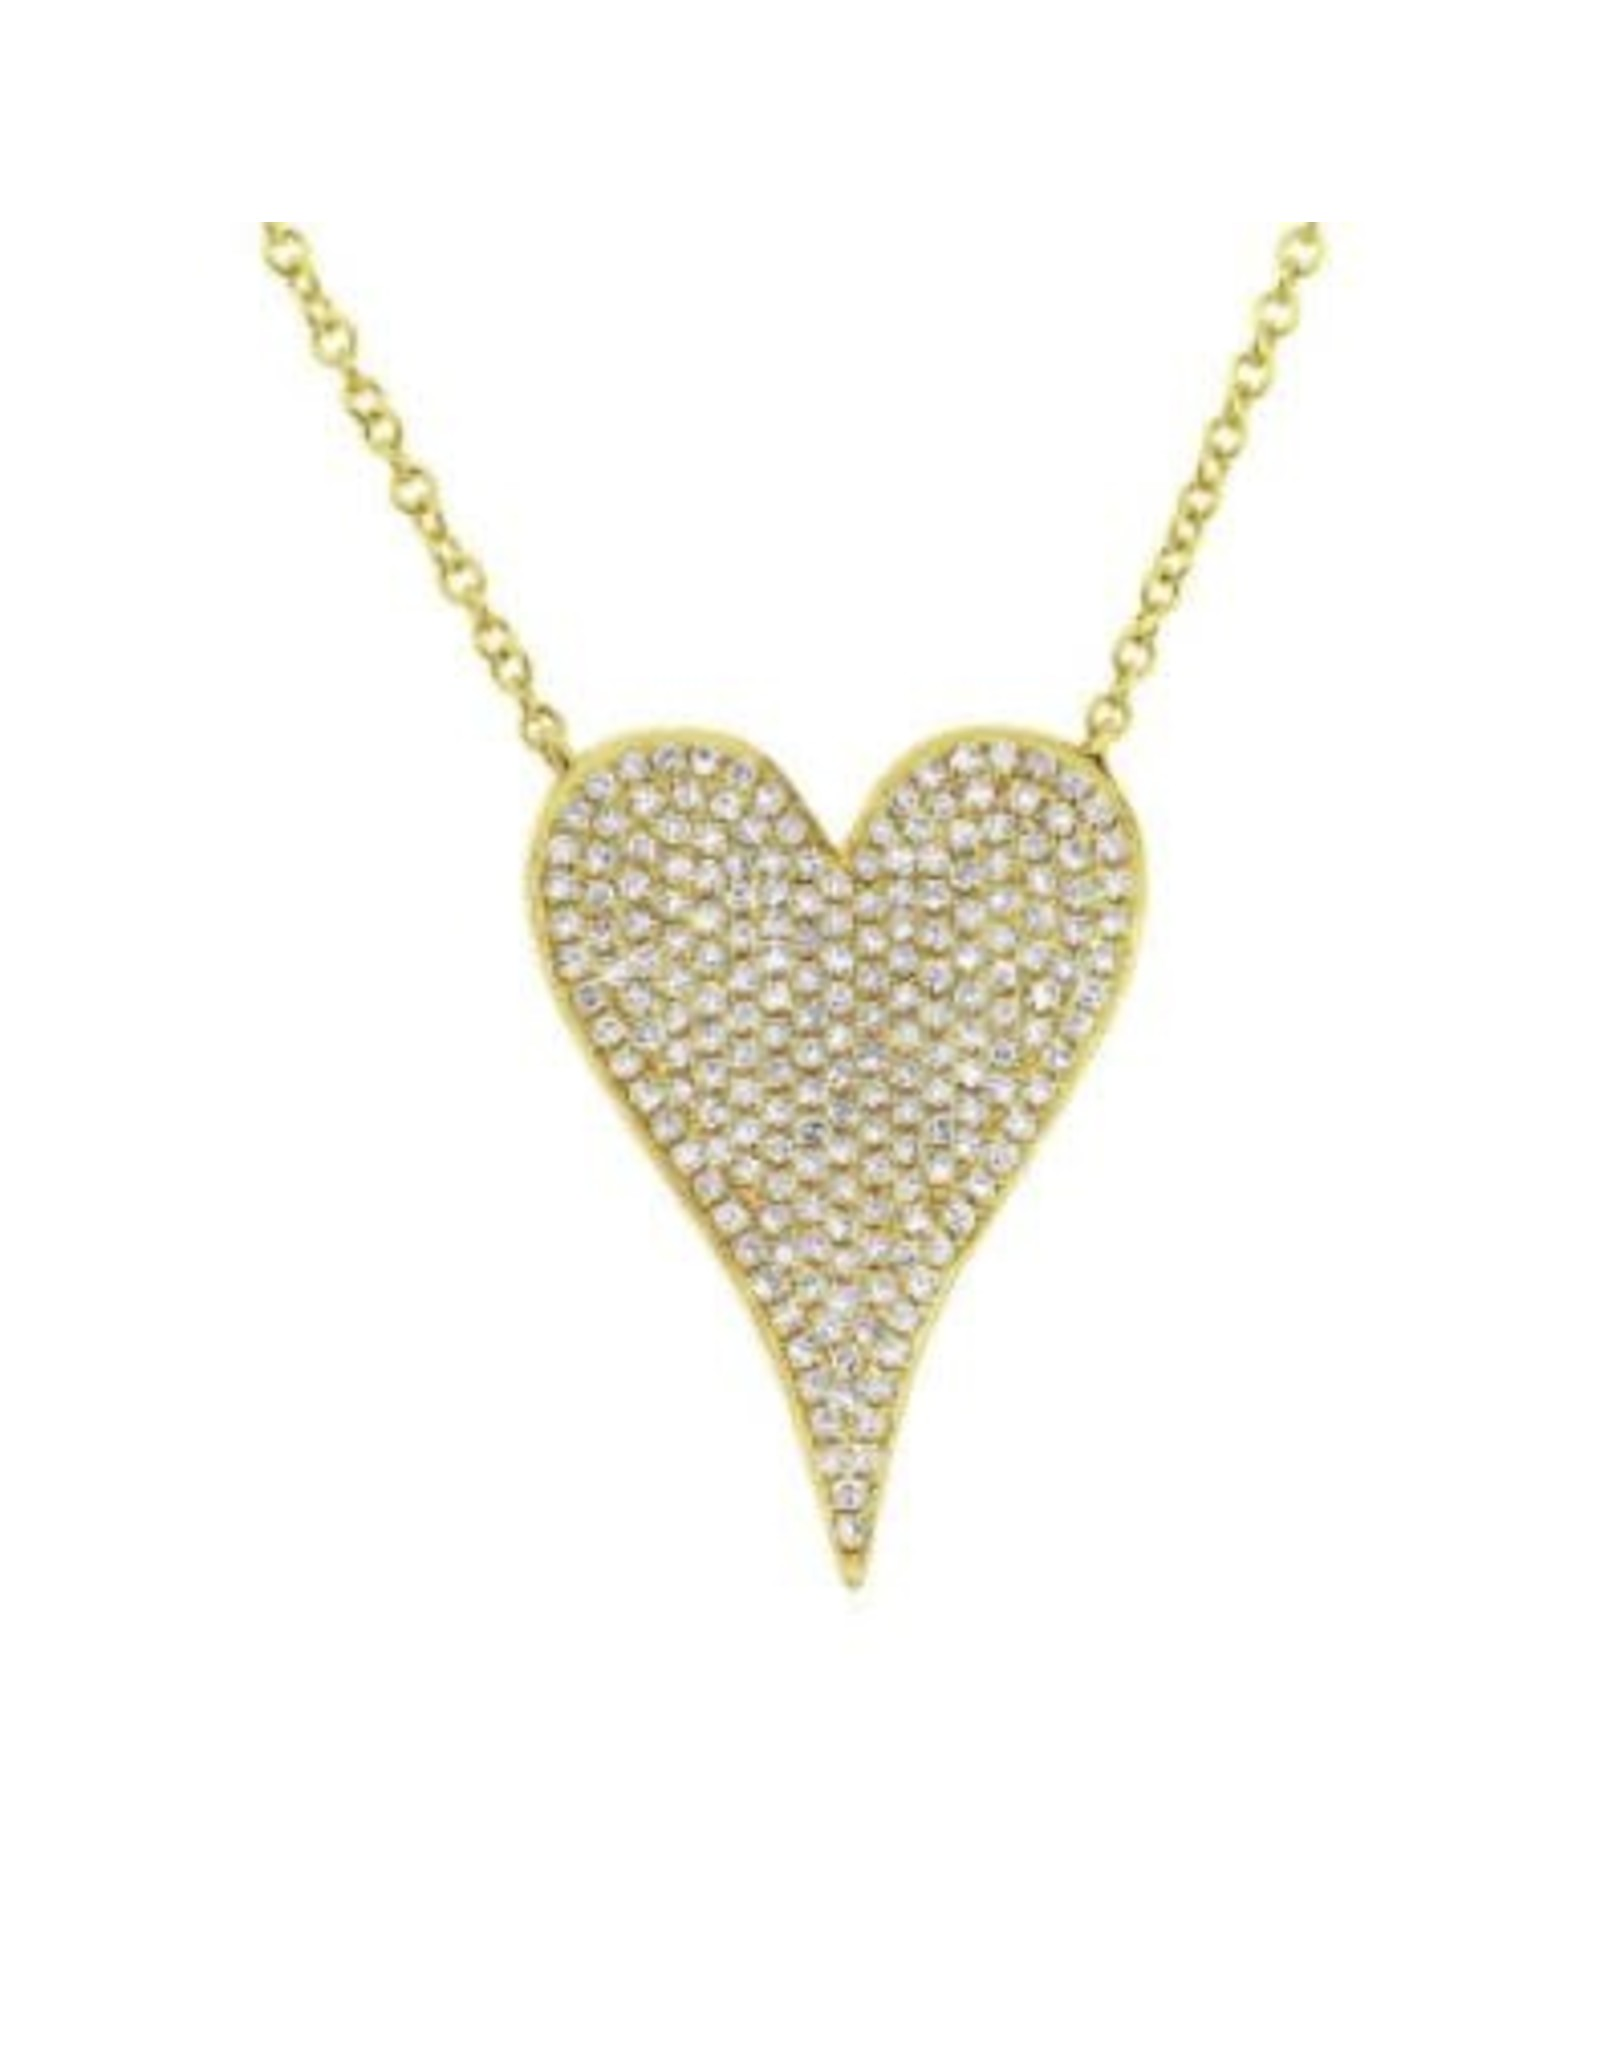 14K Yellow Gold Large Pave Diamond Heart Necklace, D: 0.43ct